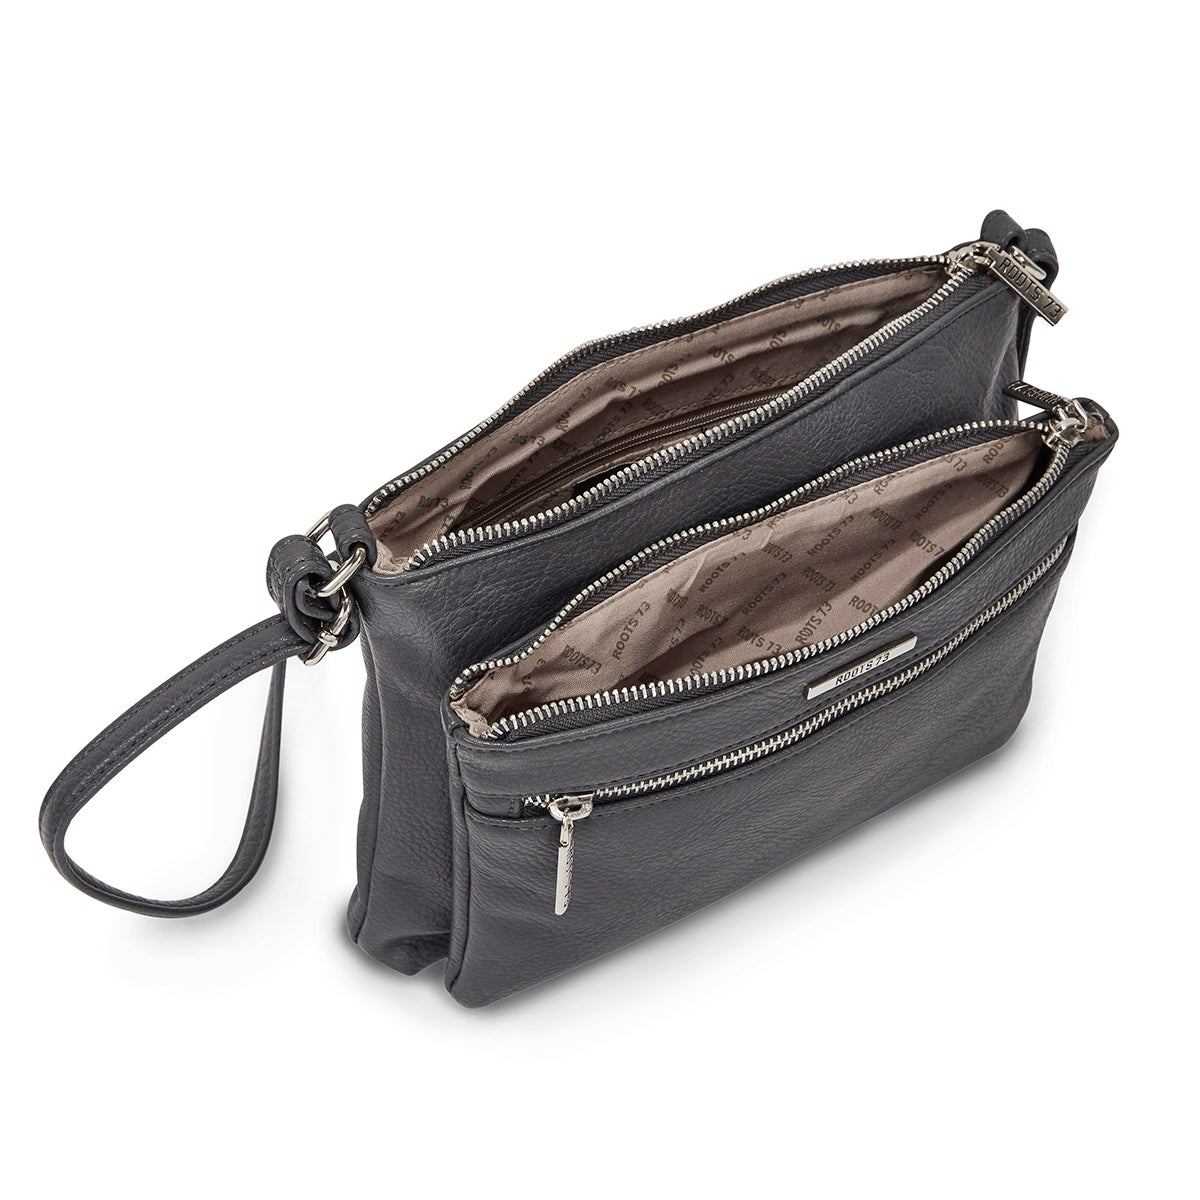 Lds Roots73 gry 3 zipper cross body bag